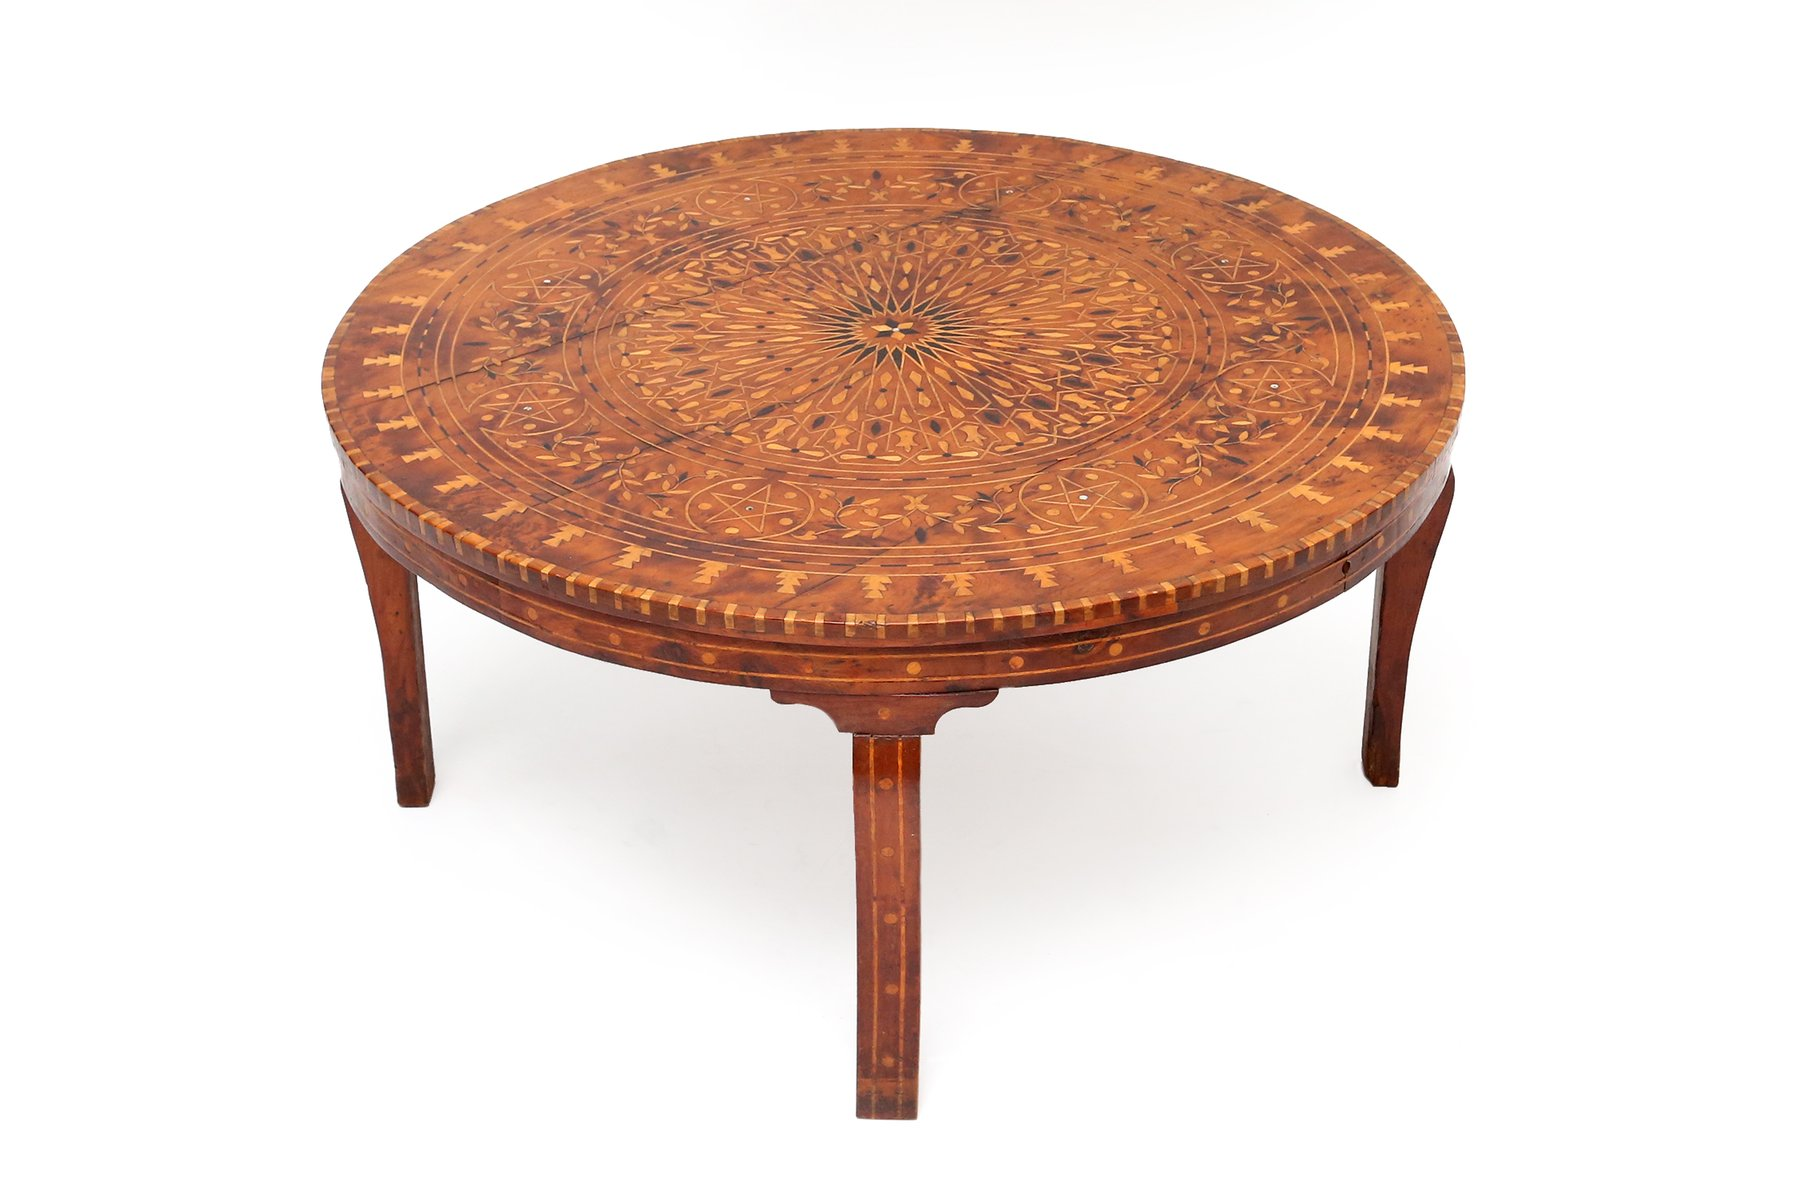 table basse marquetry syrie 1890s en vente sur pamono. Black Bedroom Furniture Sets. Home Design Ideas